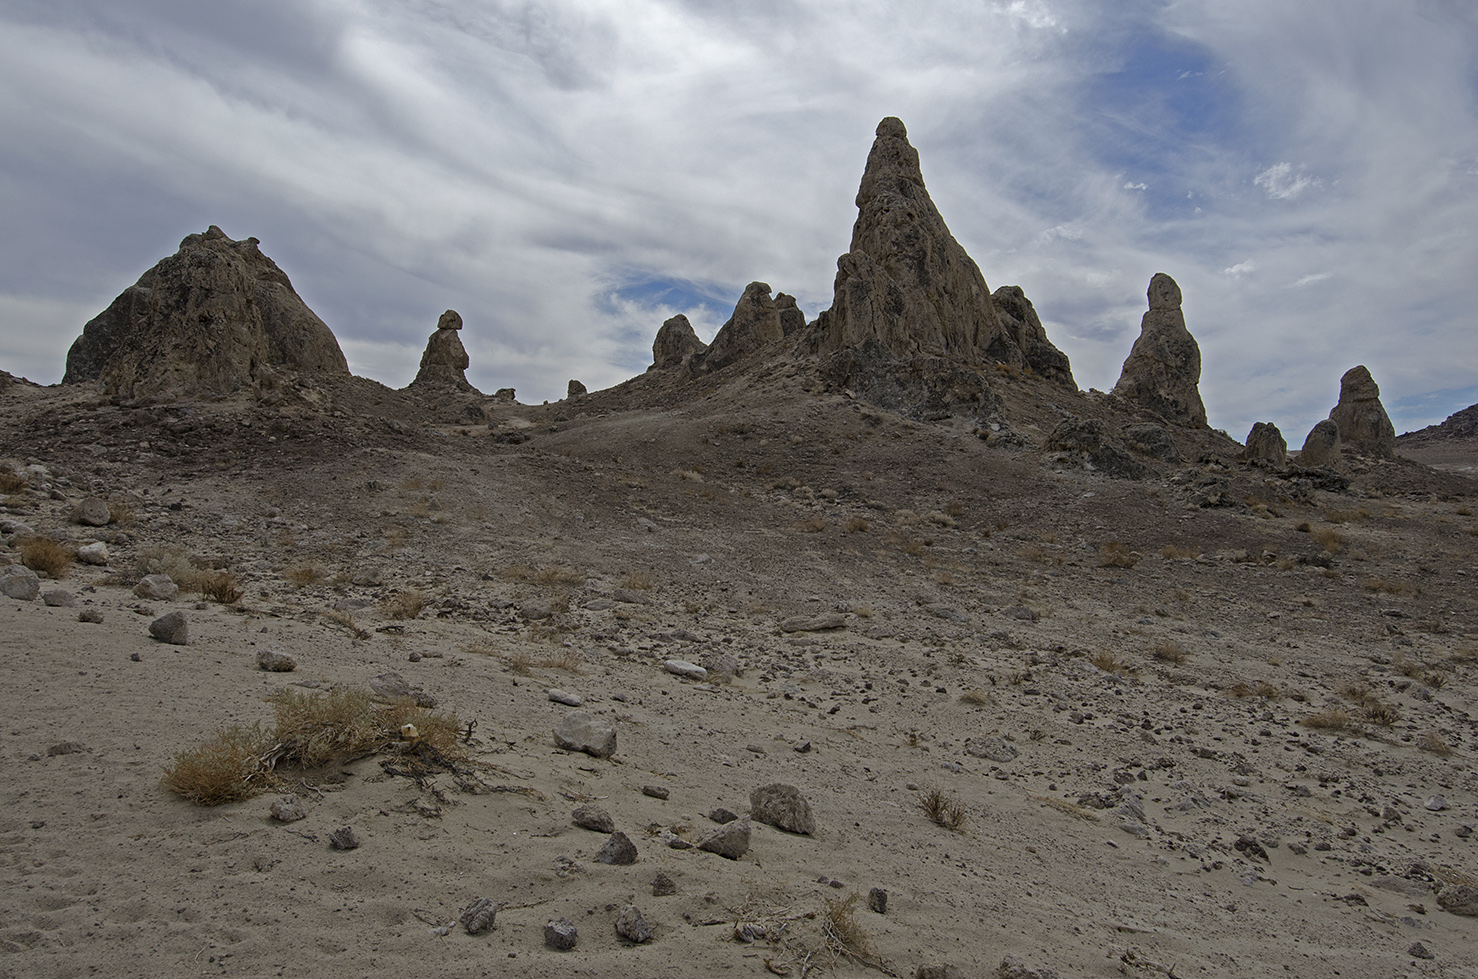 Was sort of expecting Godzilla to poke his head around one of those spires.